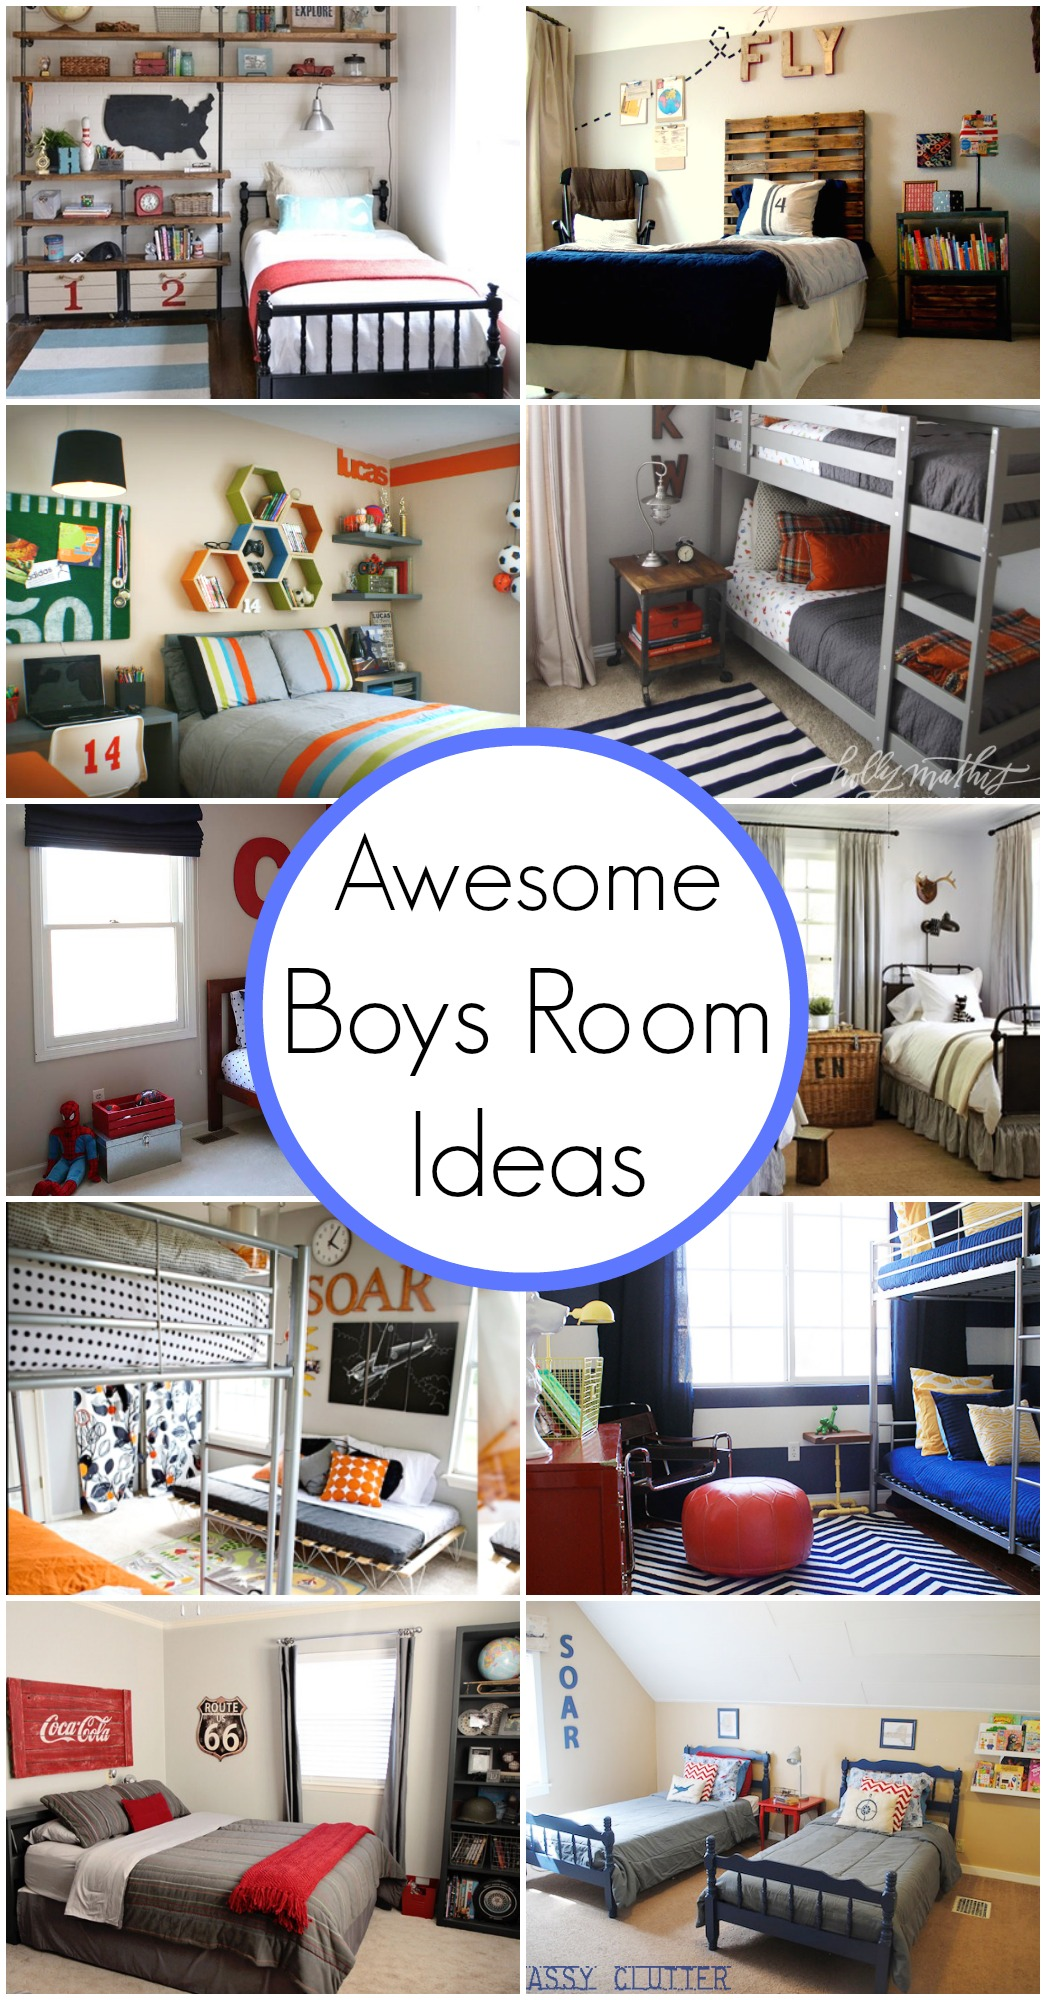 10 Awesome Boy's Bedroom Ideas - Classy Clutter on Awesome Ideas  id=74036